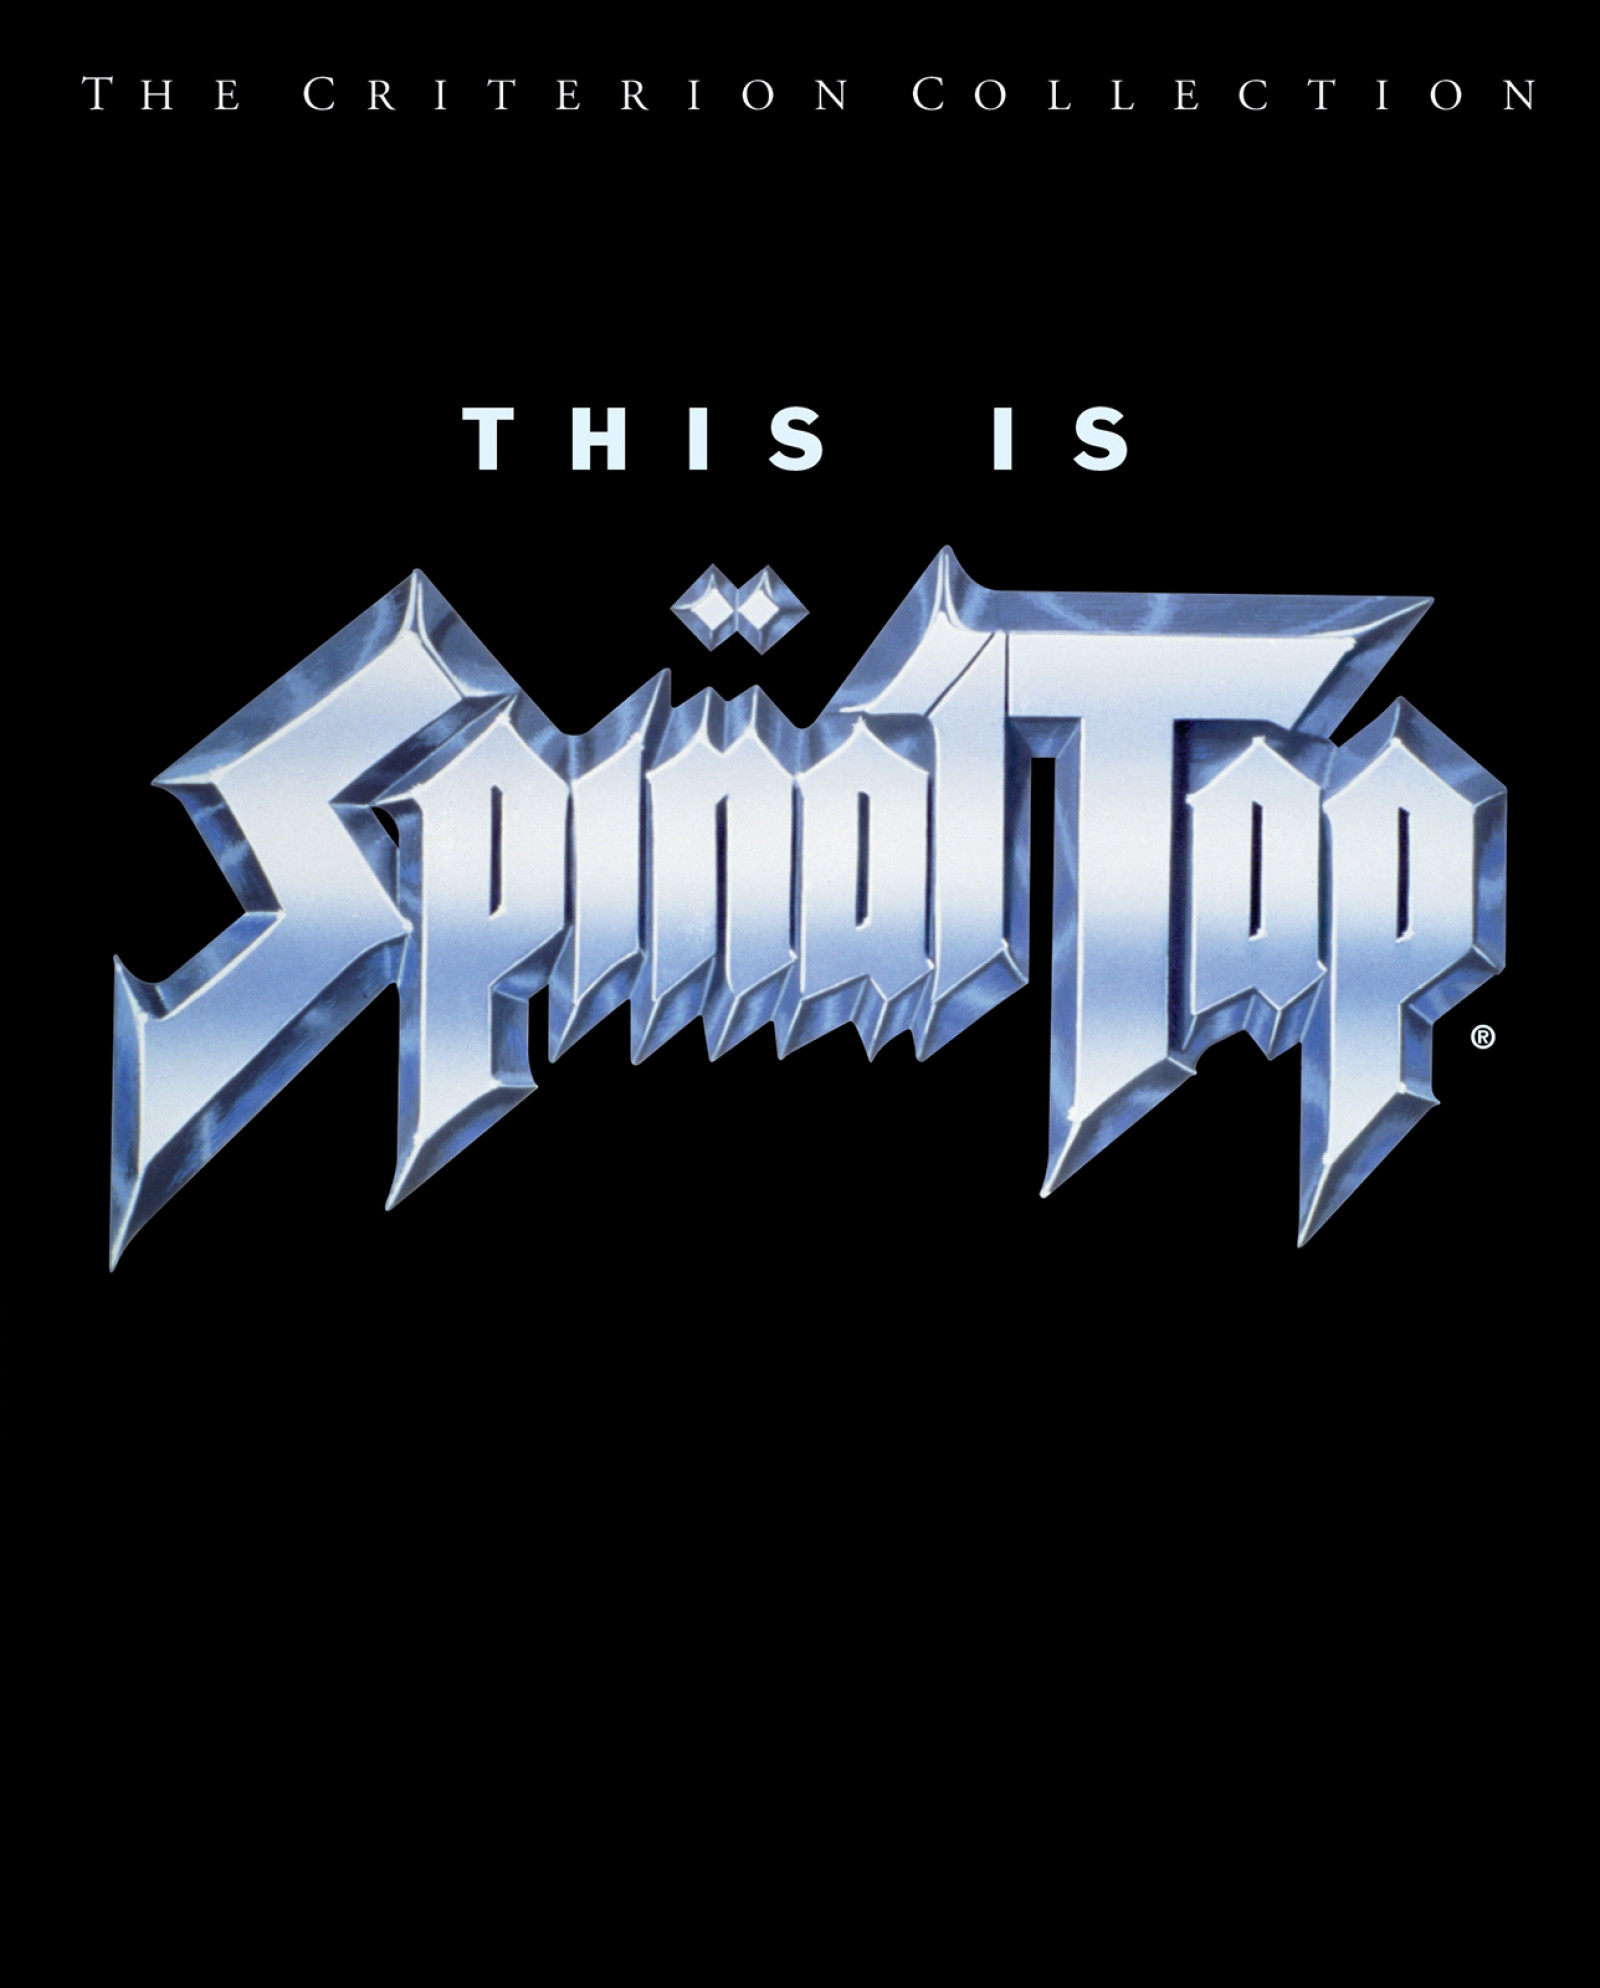 Image result for this is spinal tap criterion